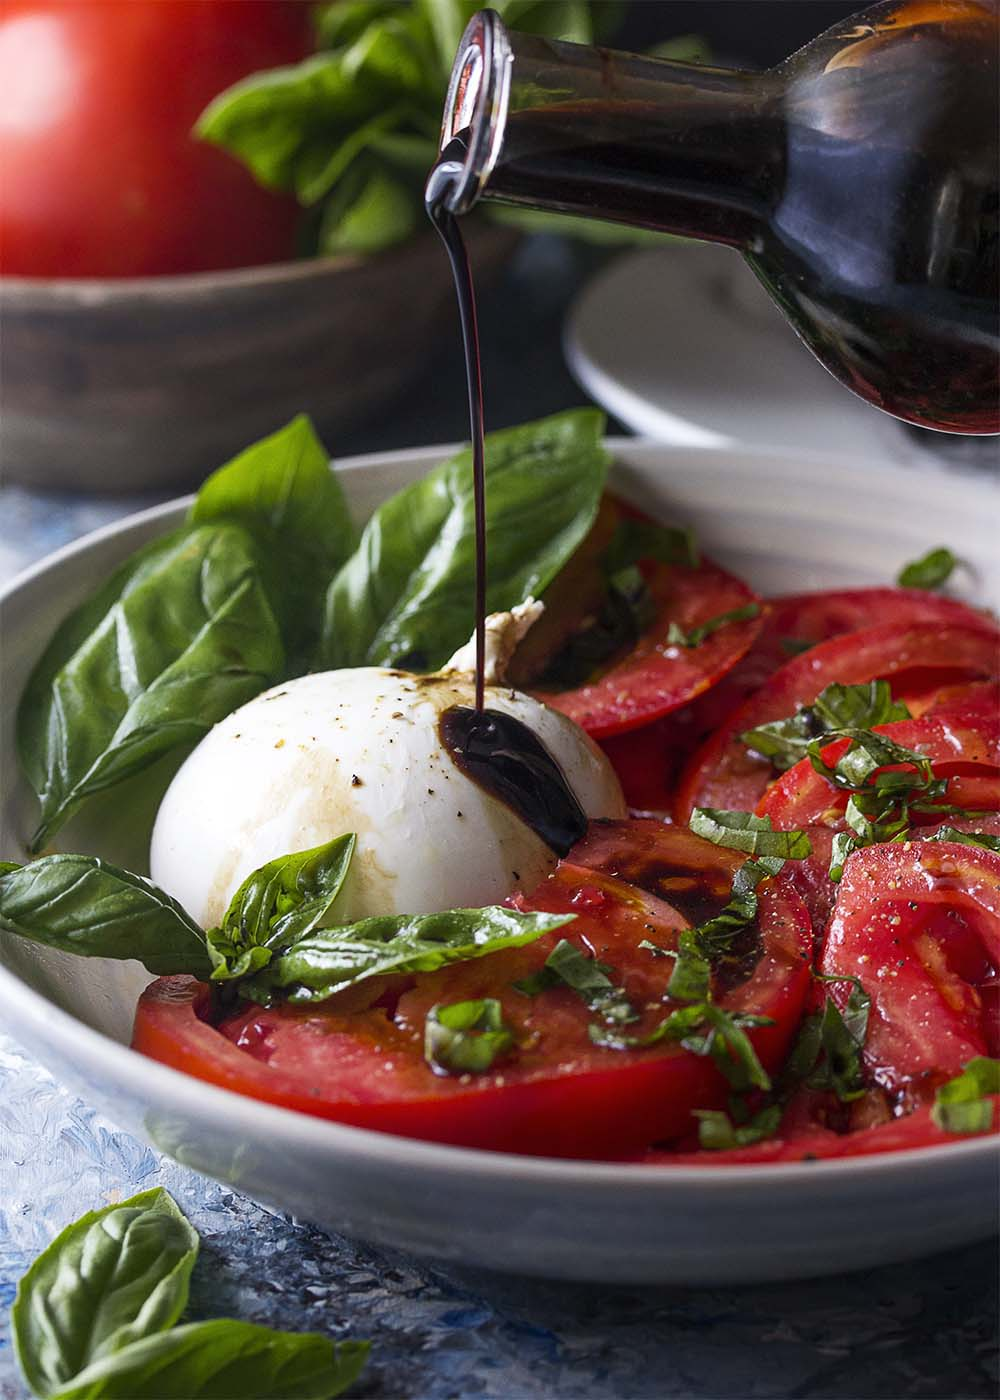 A bowl of sliced tomatoes and burrata topped with basil, olive oil and black pepper with thick balsamic vinegar poured over the top.